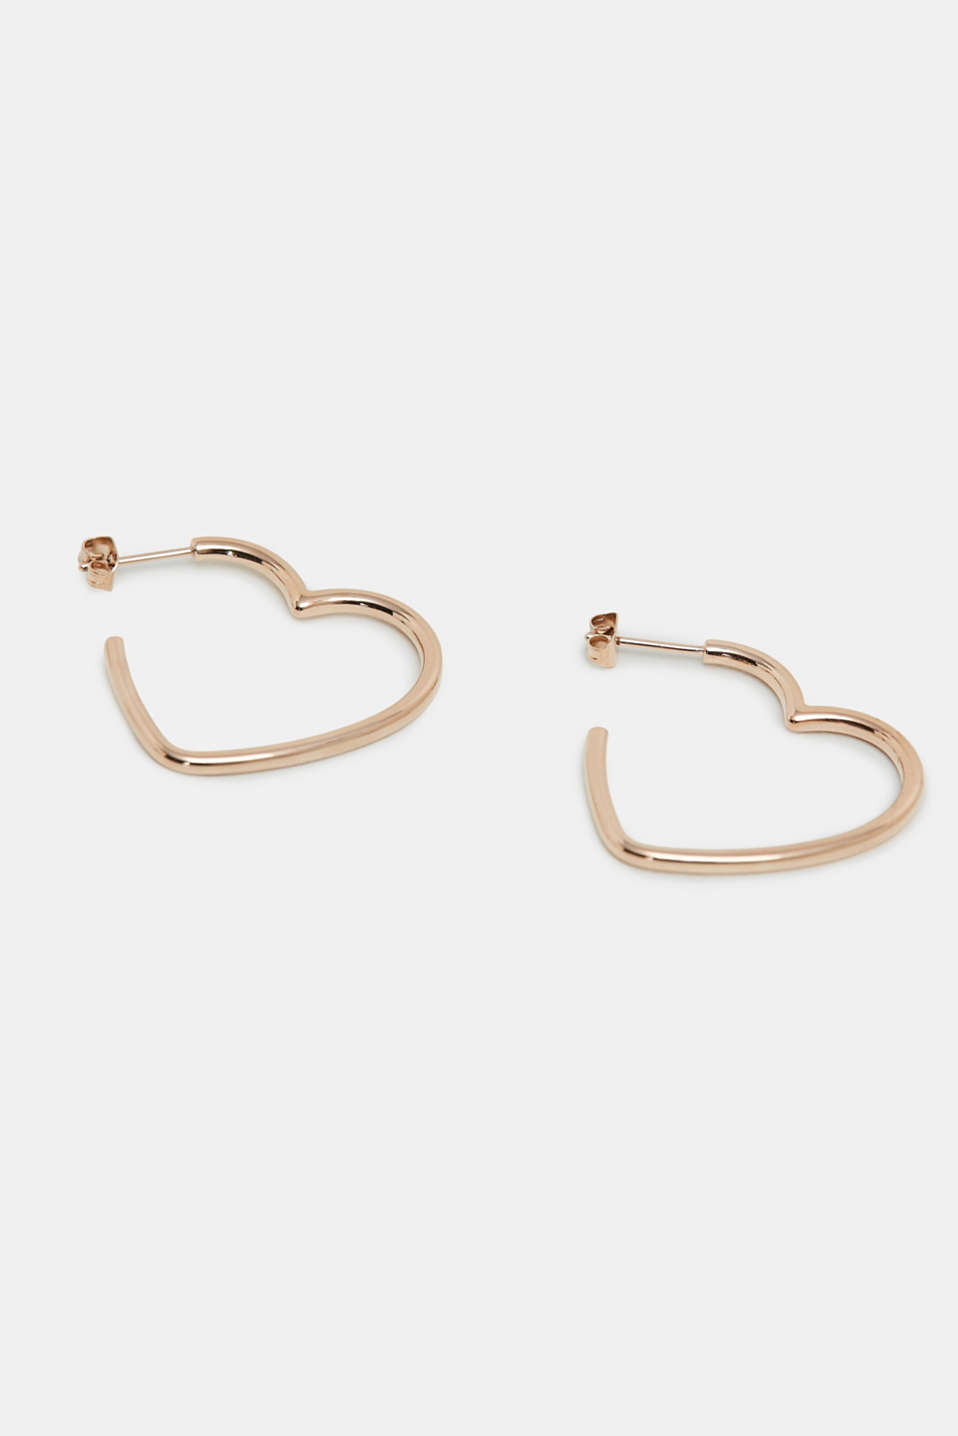 Esprit - Heart-shaped earrings in stainless steel